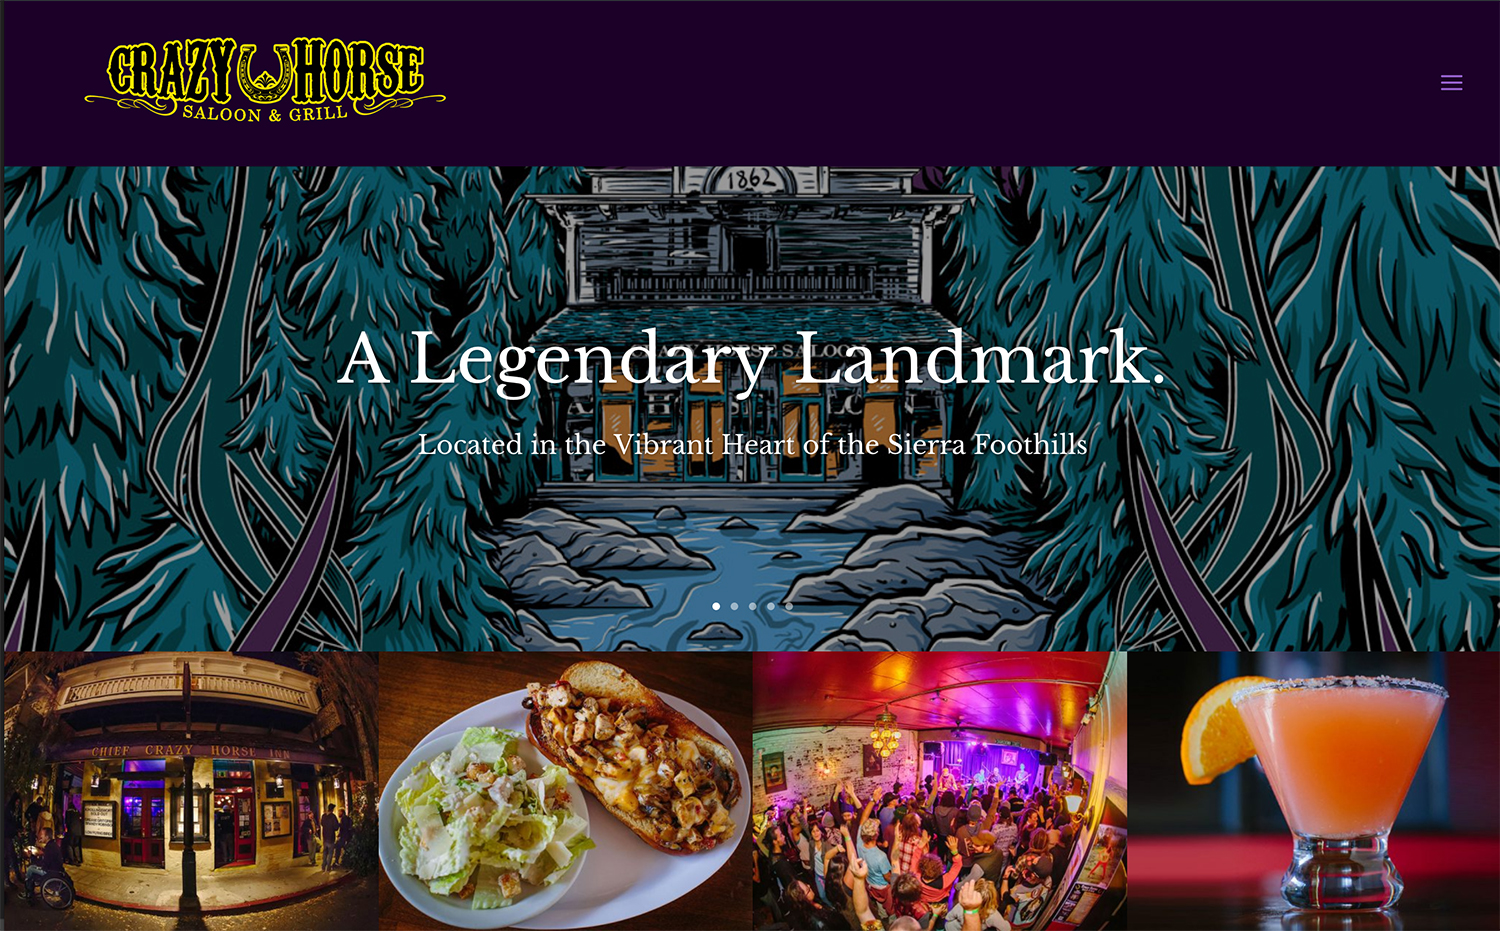 Crazy Horse Saloon & Grill Website